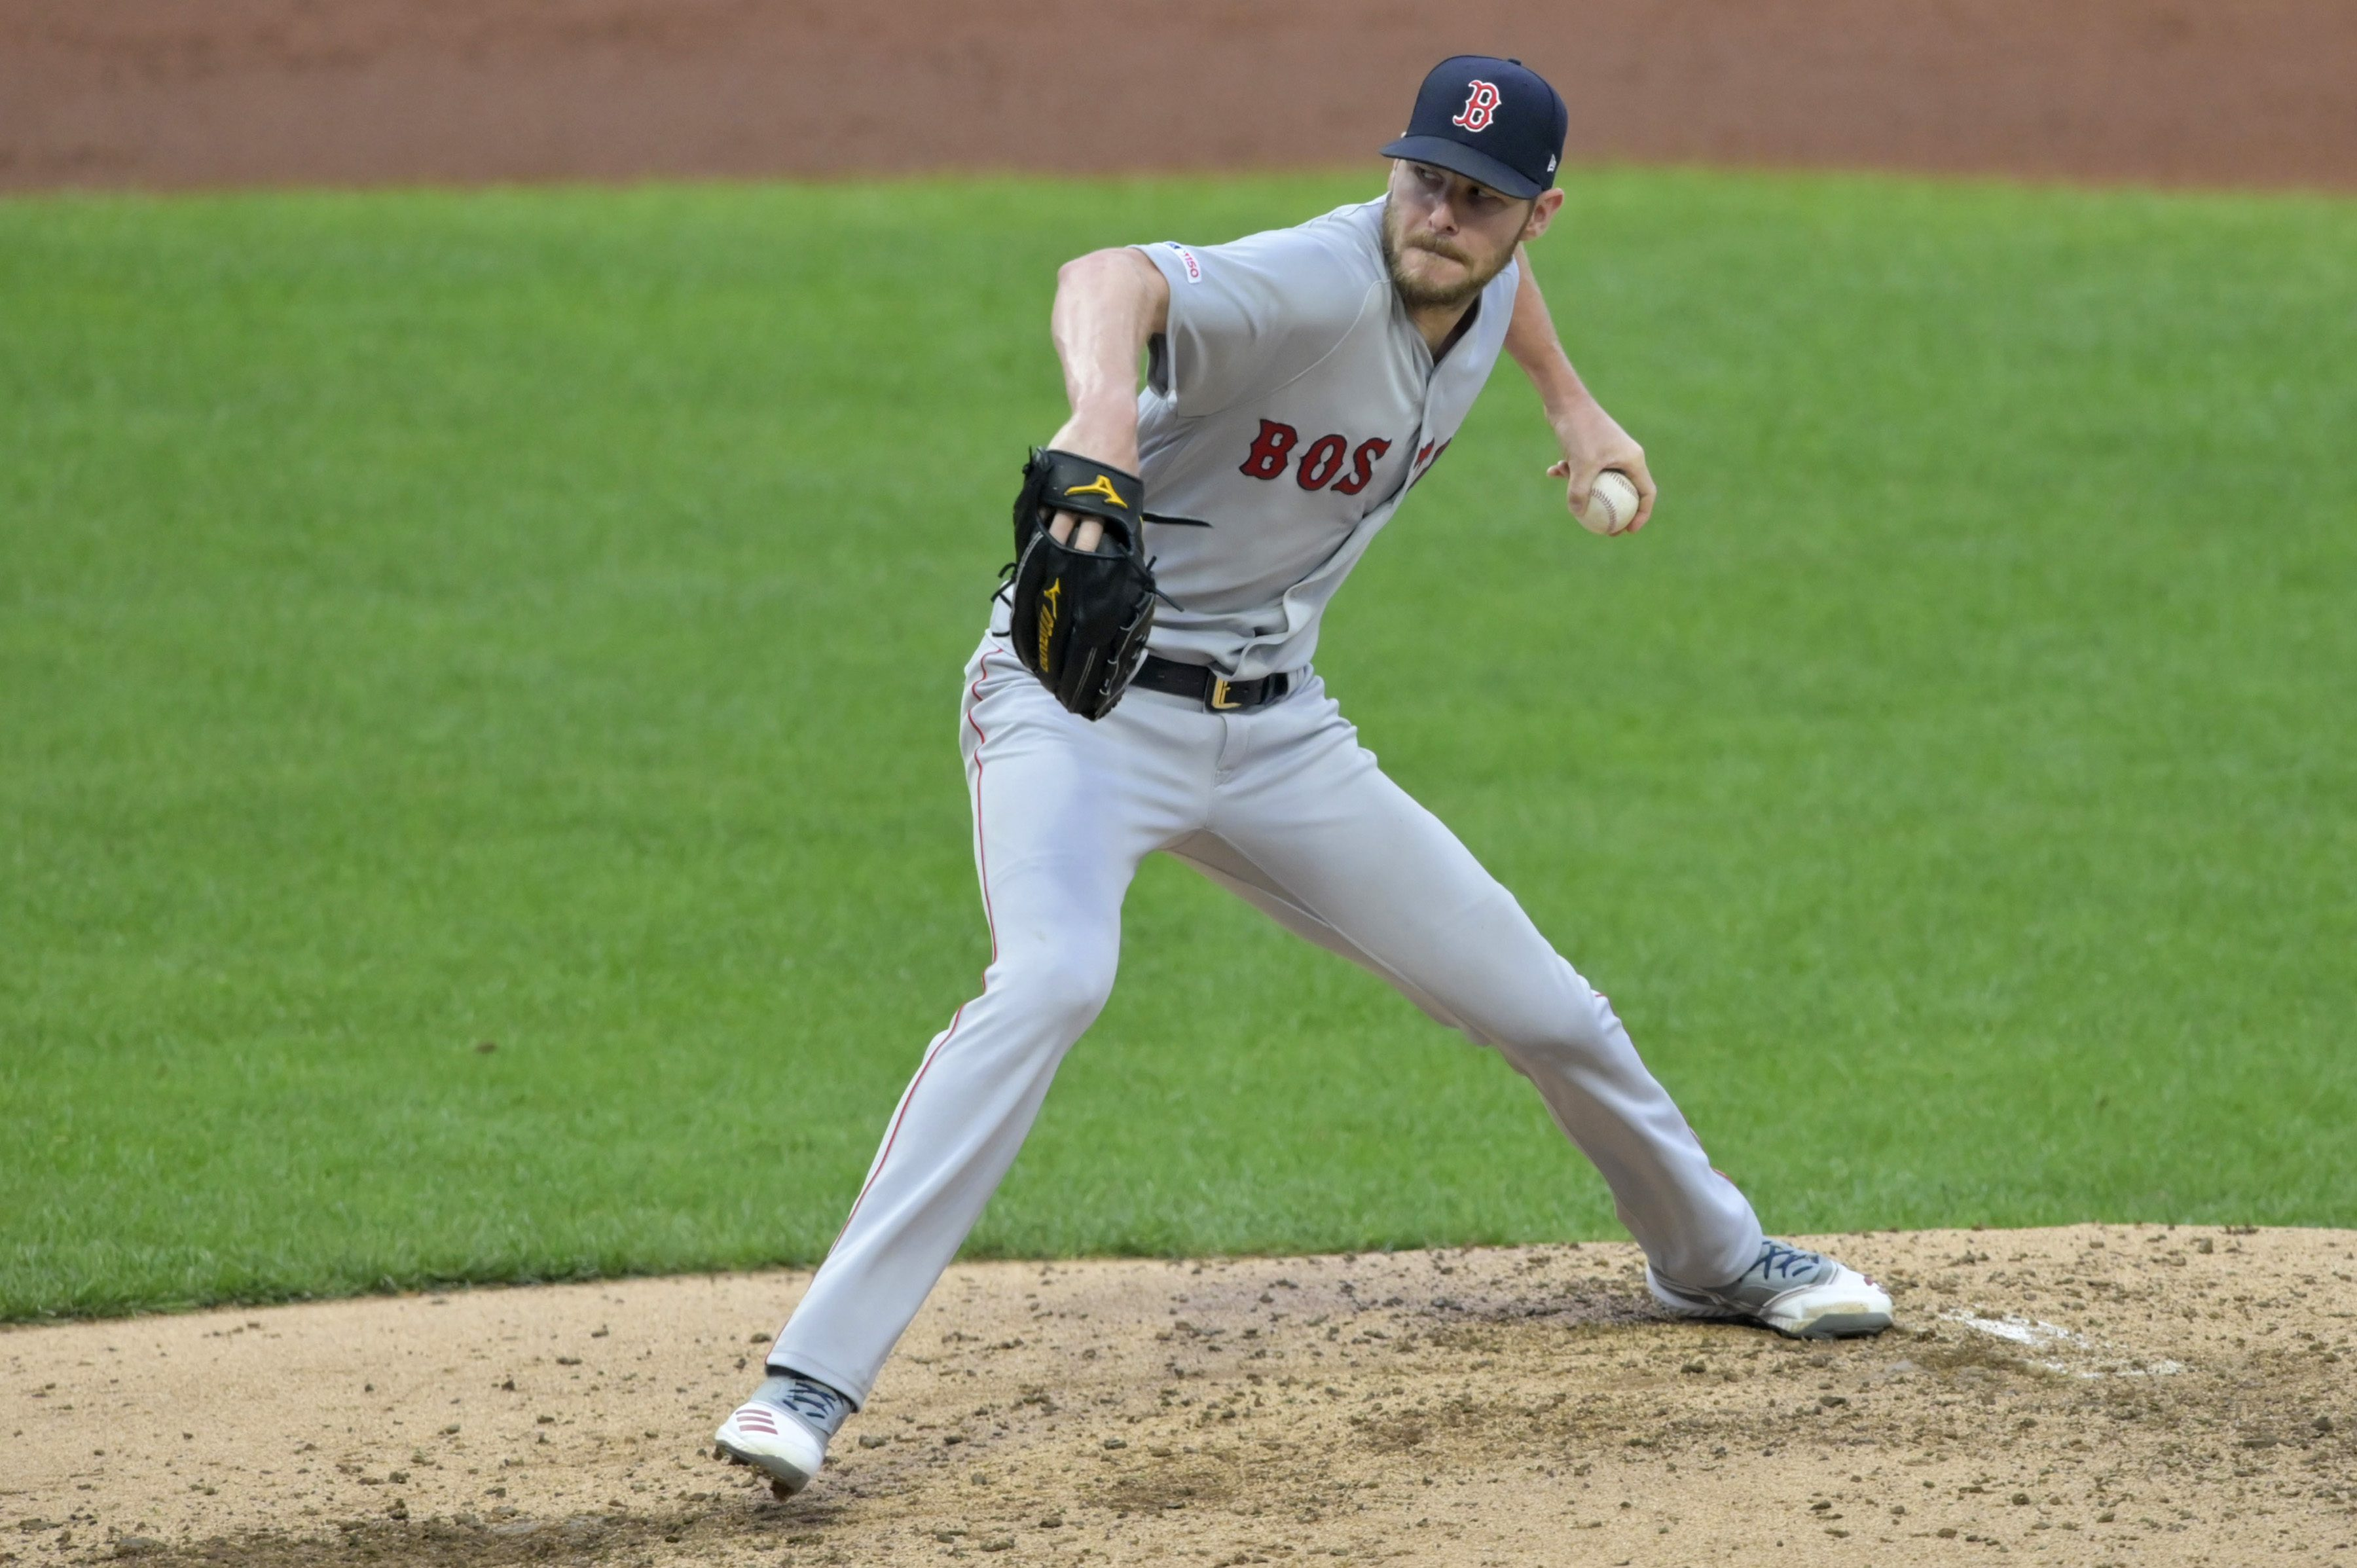 Leandre: There's an Easy Way for Chris Sale to Return to Form